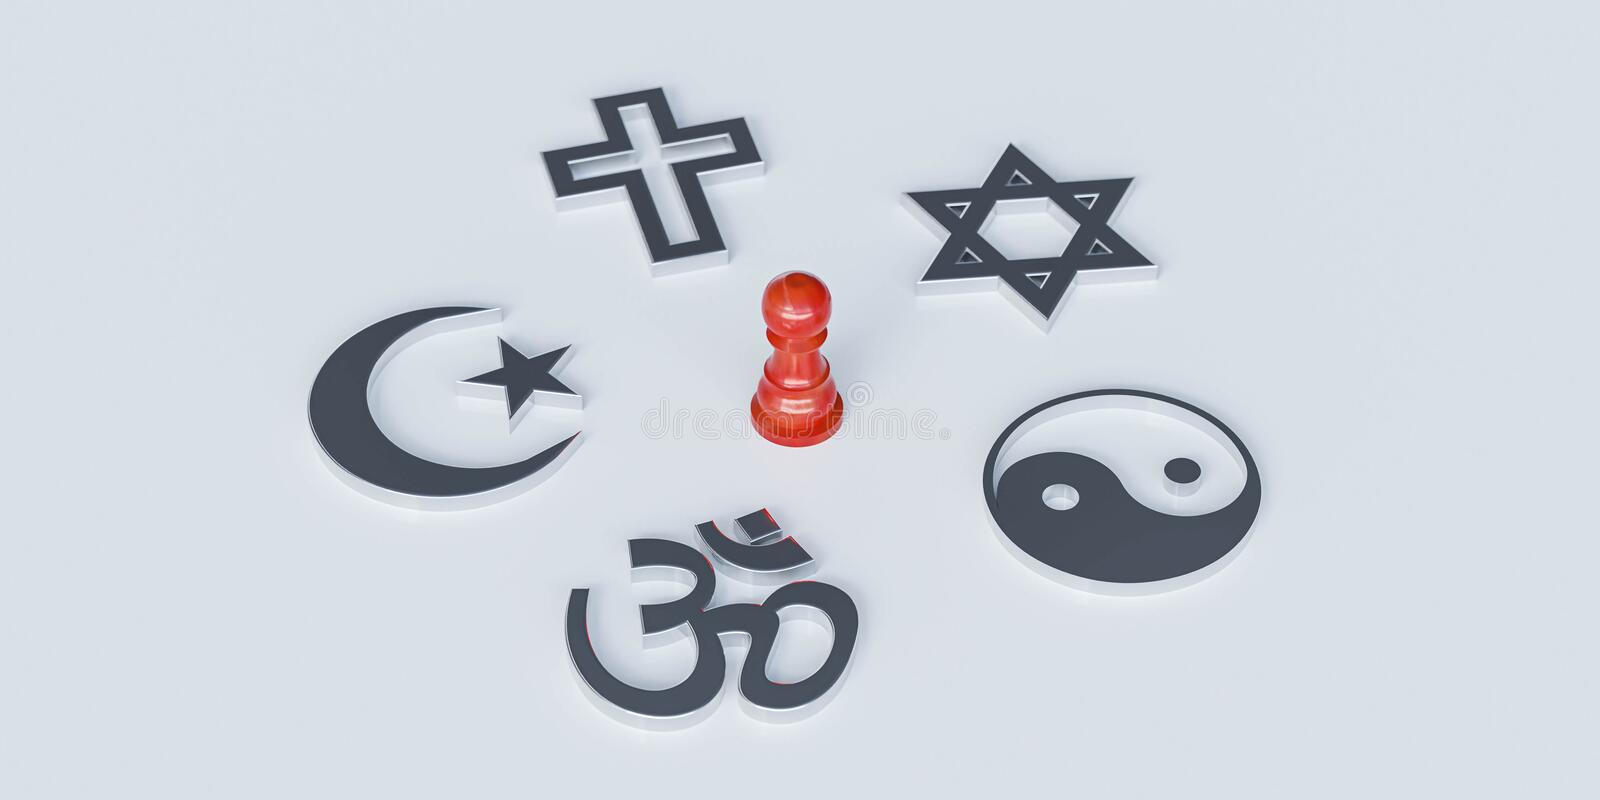 Christianity, Catholicism, Buddhism, Judaism, Islam symbols on with red wooden dummy. chosing between religions or conflict 3d. World religions concept stock illustration